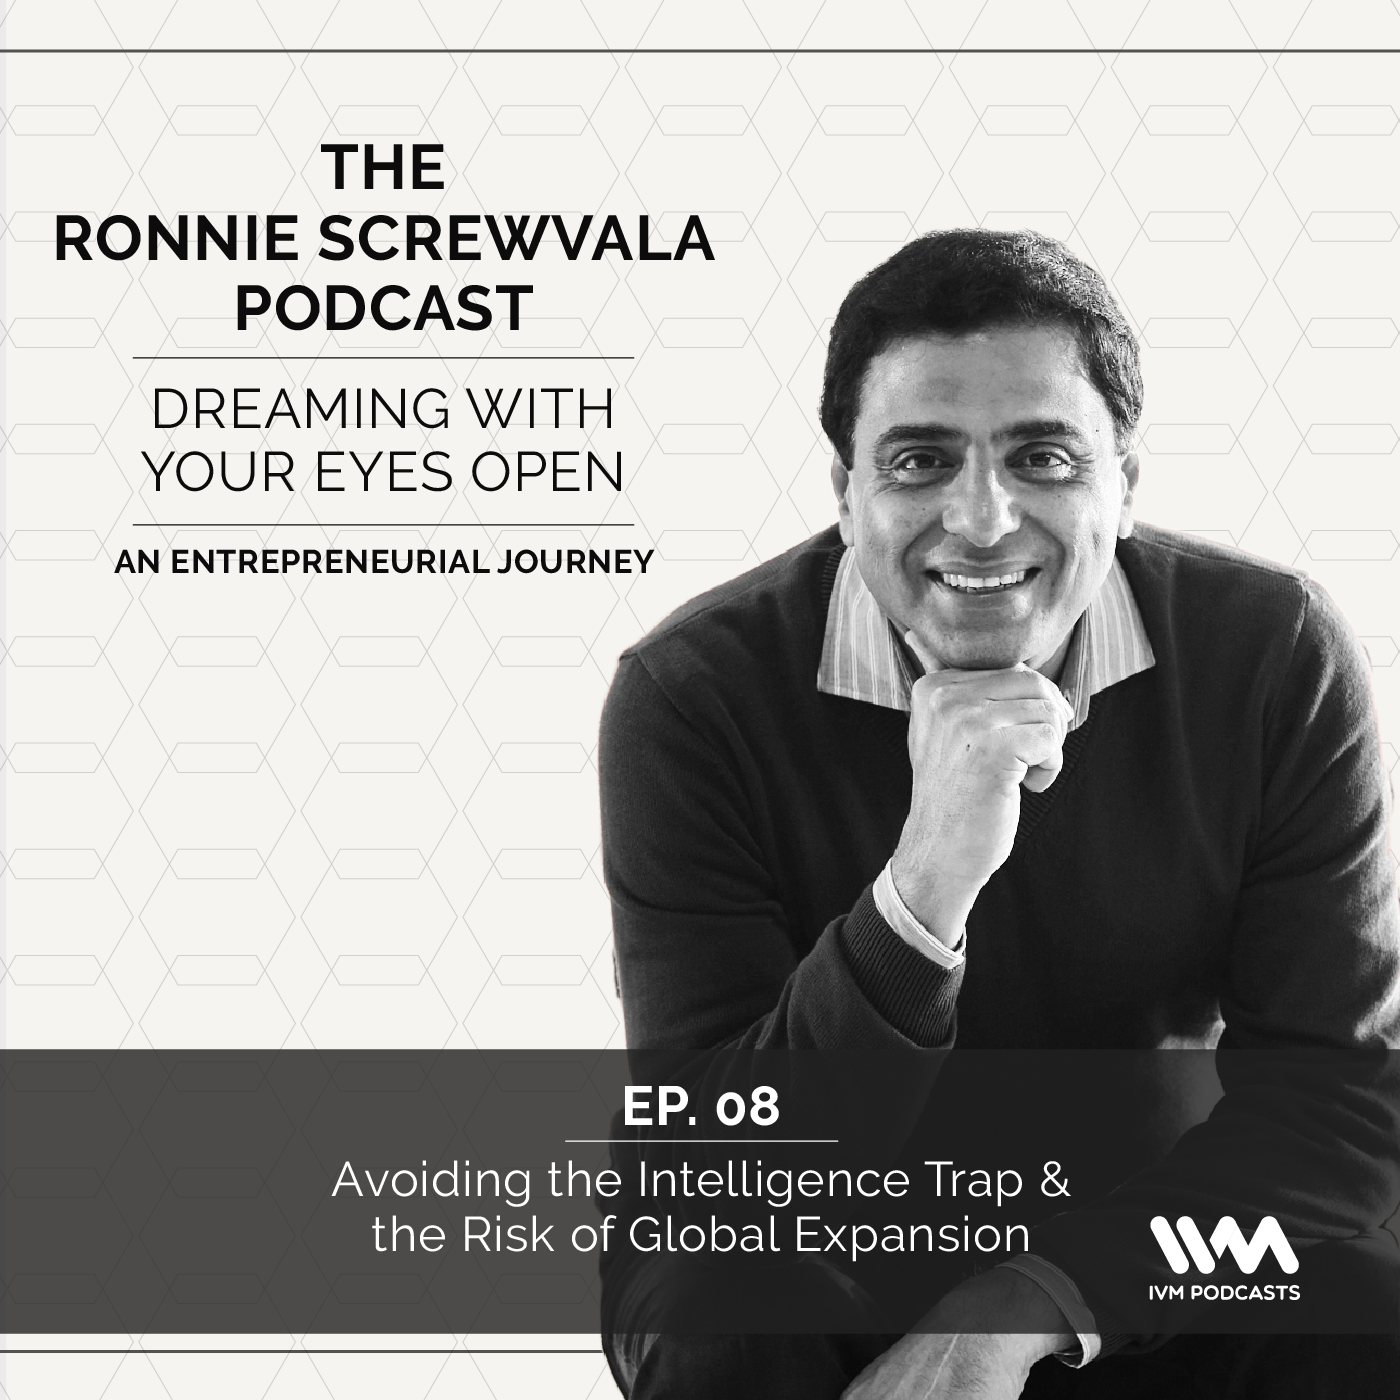 Ep. 08: Avoiding the Intelligence Trap & the Risk of Global Expansion